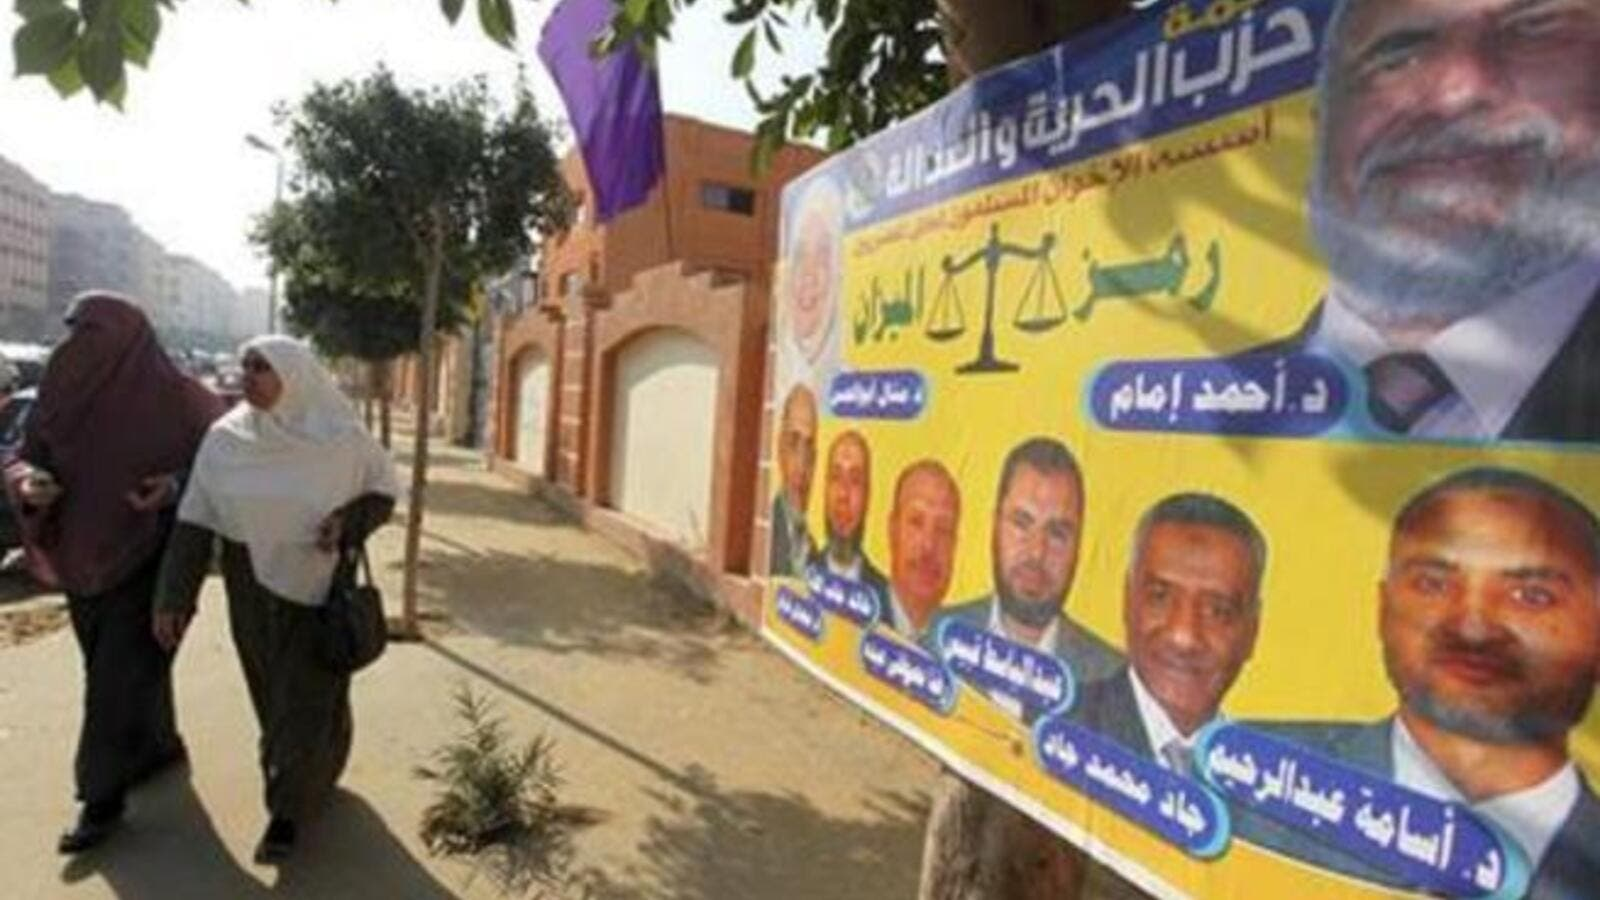 Spring is here and politicians want votes-- time to play the religion card in Egypt.